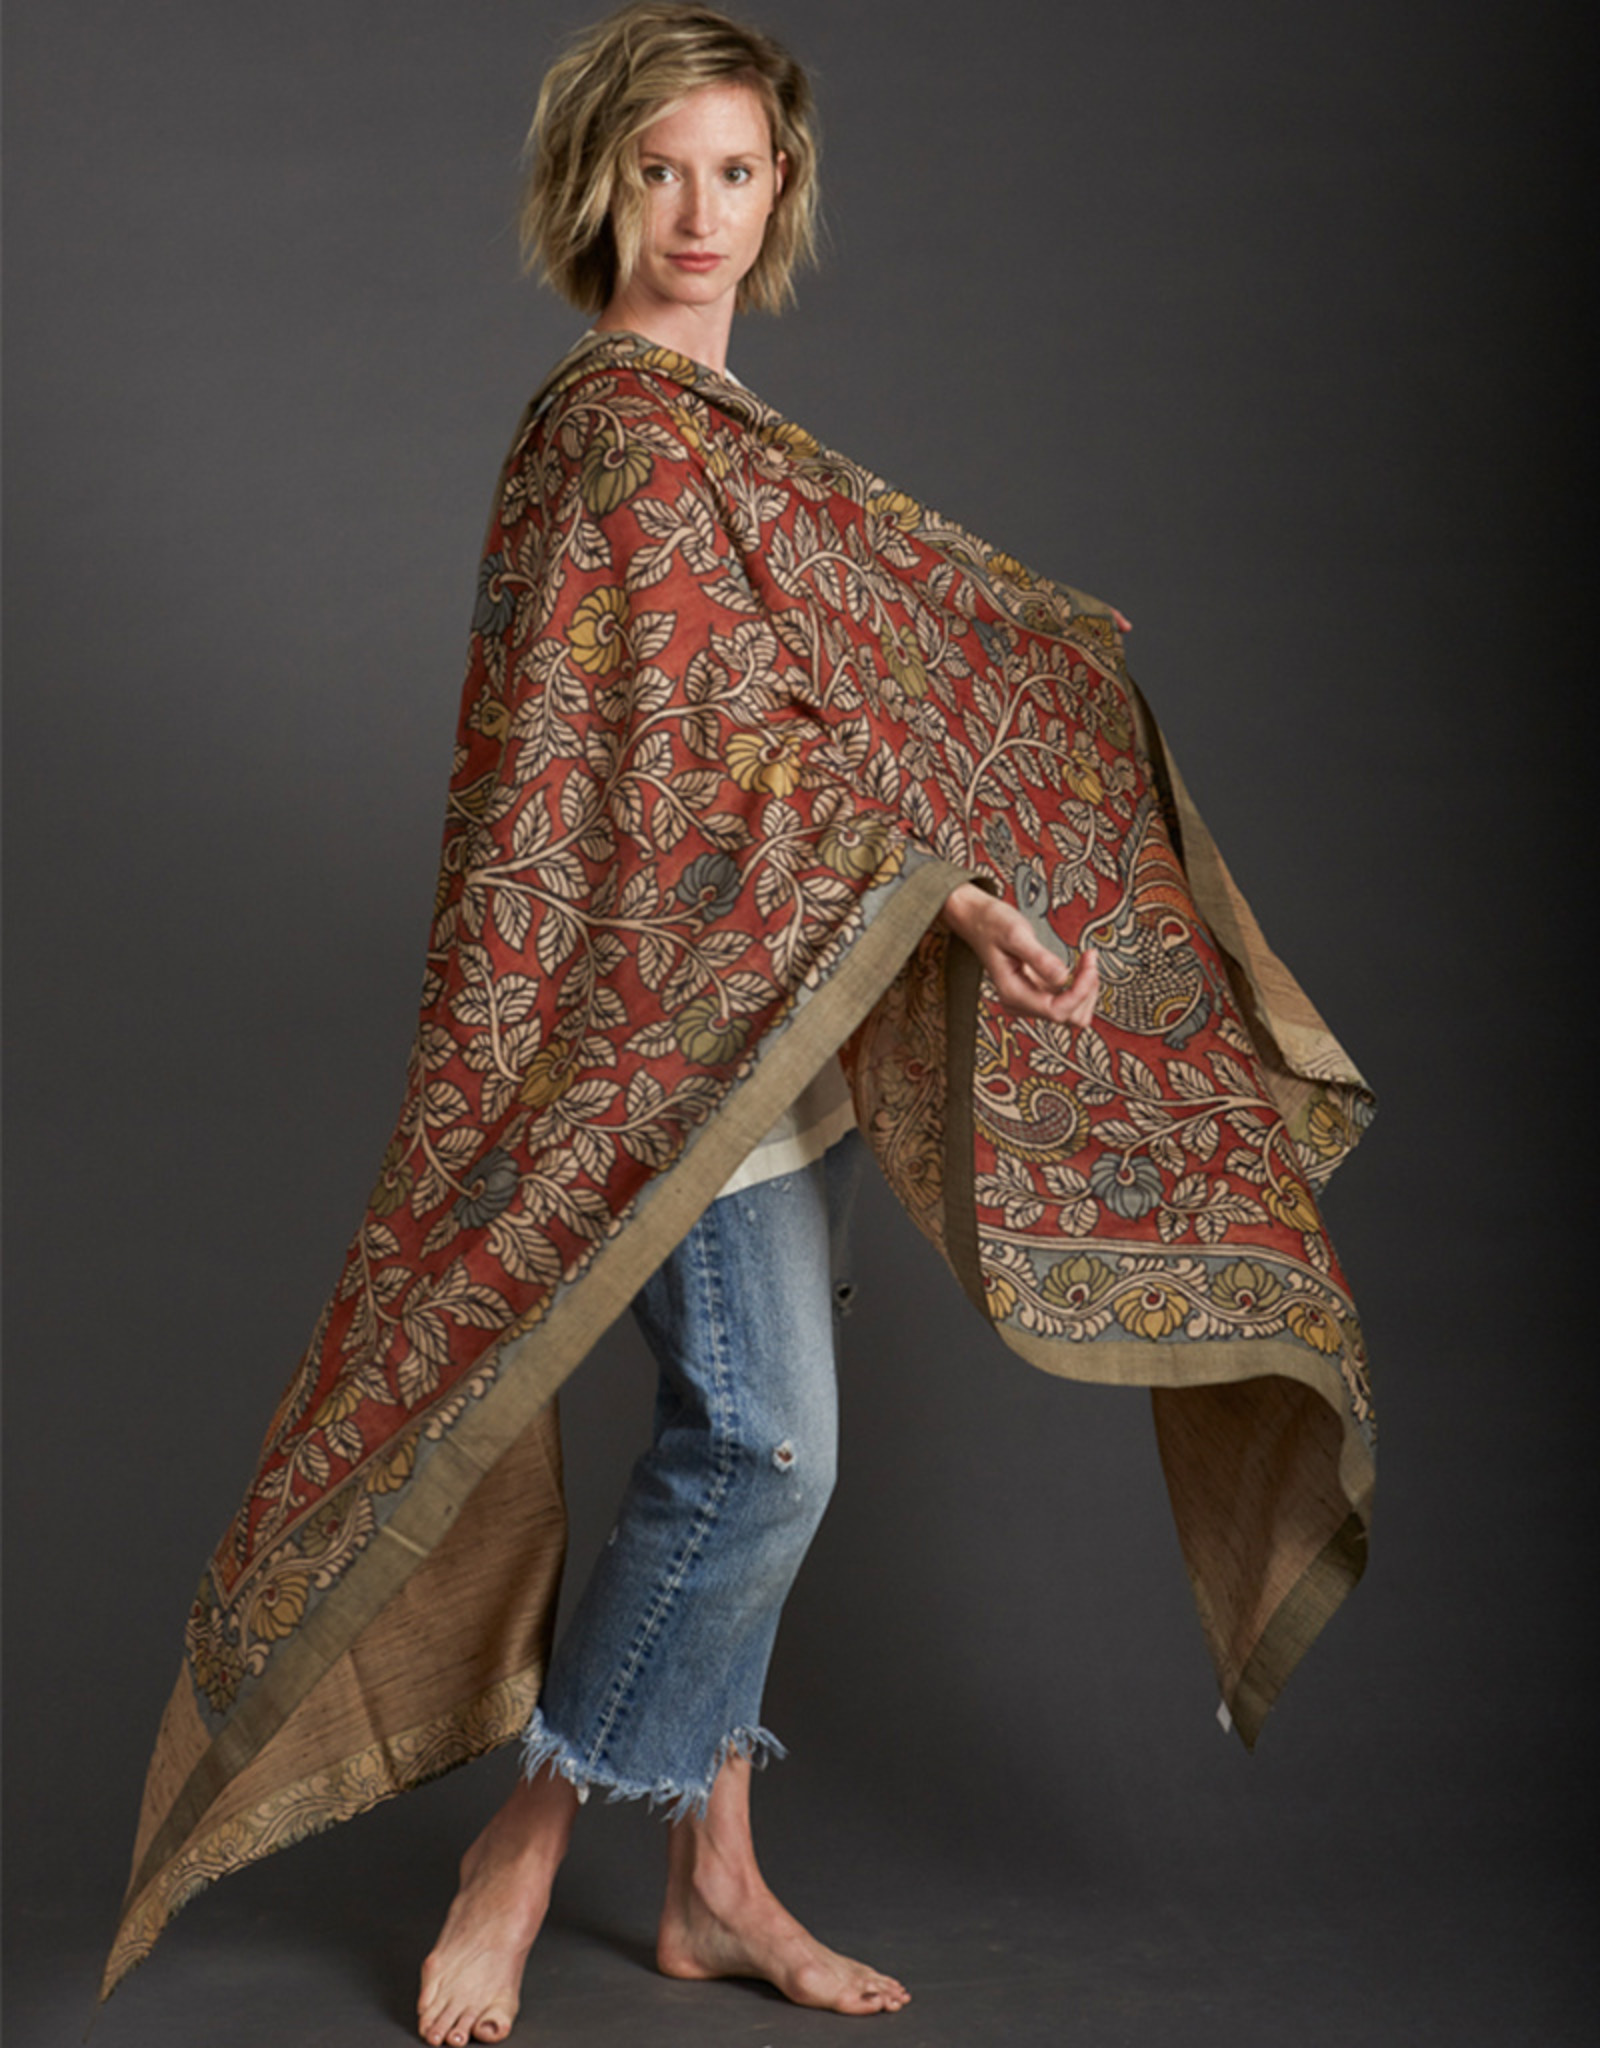 Dwaraka Hand Painted Silk Shawl with Woven Border